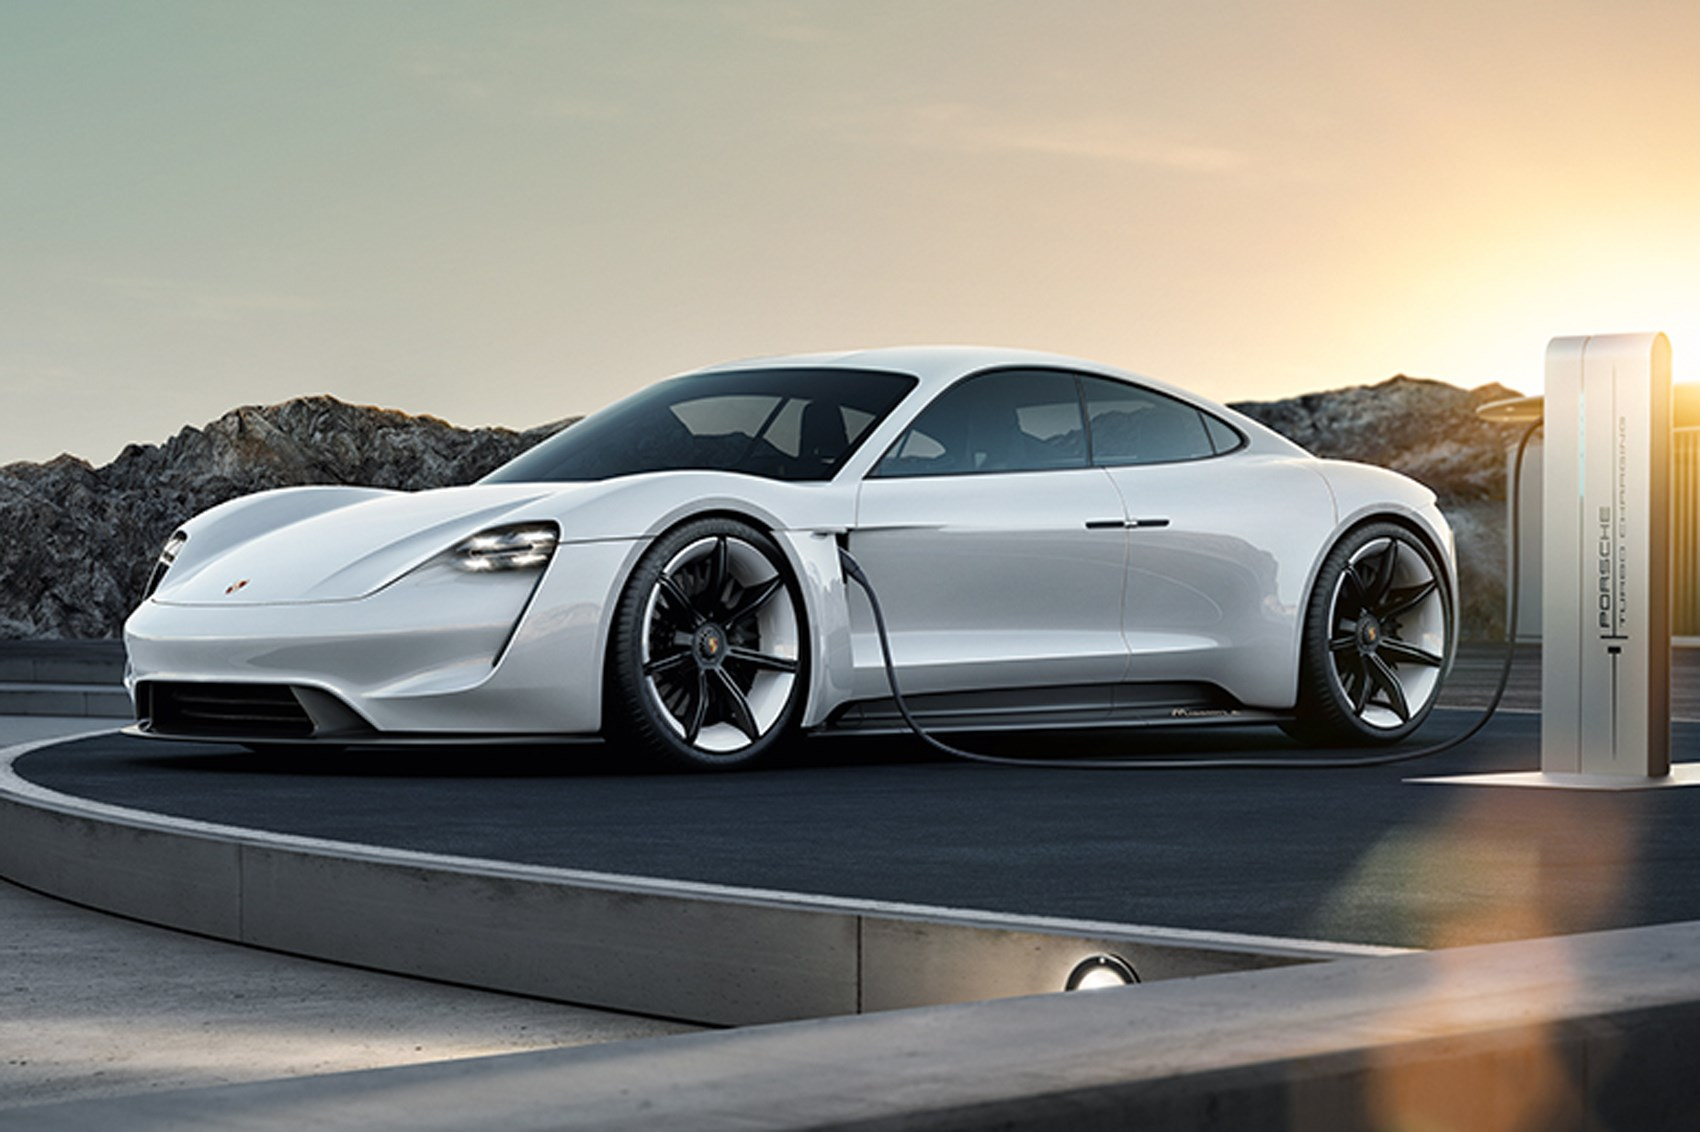 Porsche to Launch its Electric Car 'Taycan' in India by 2020 15